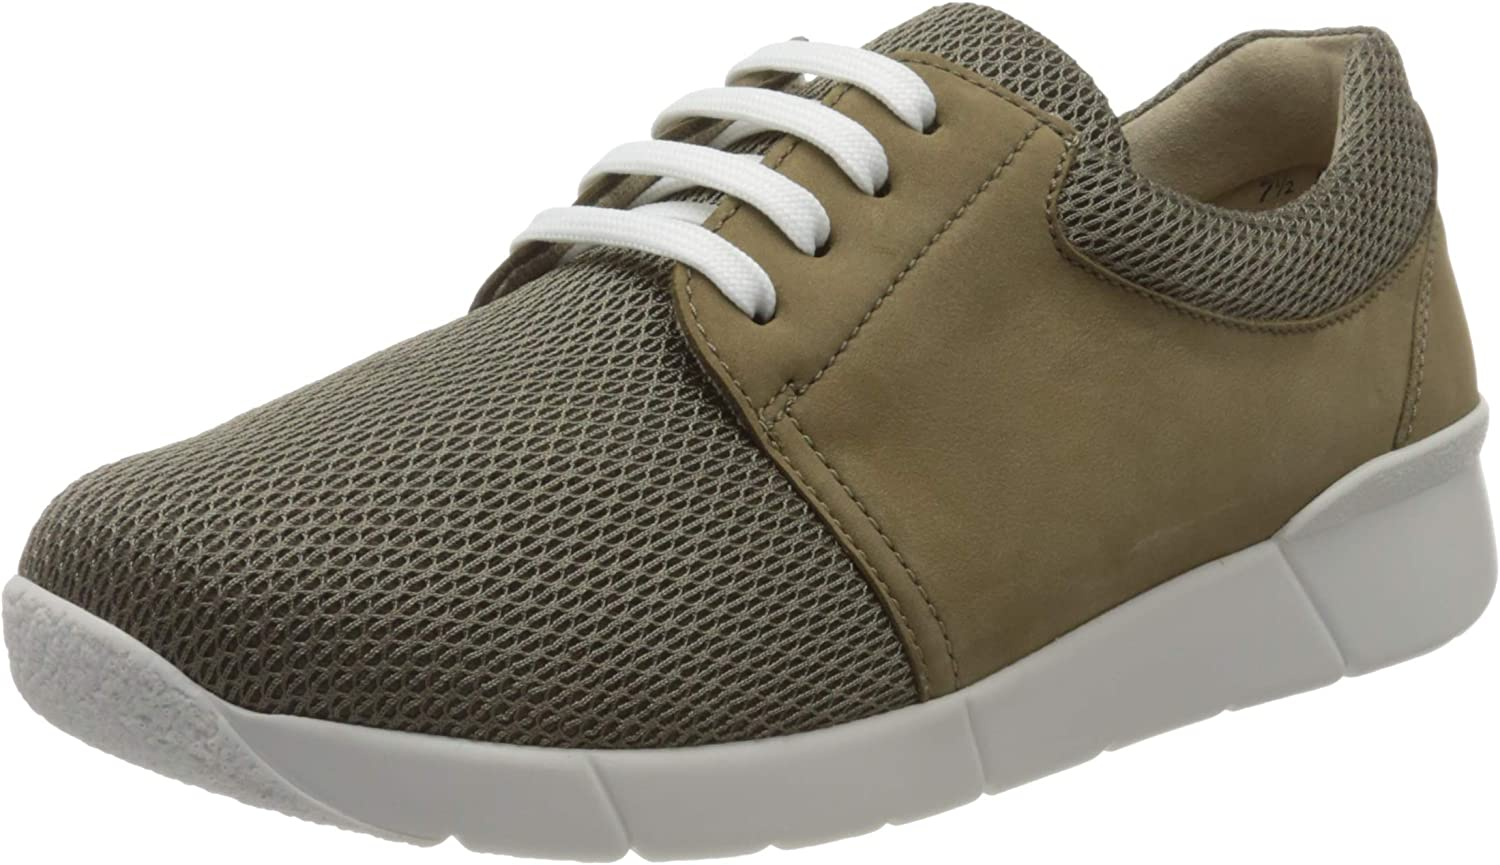 Berkemann Men's Low-Top Outlet ☆ Free Shipping Sales of SALE items from new works Sneakers